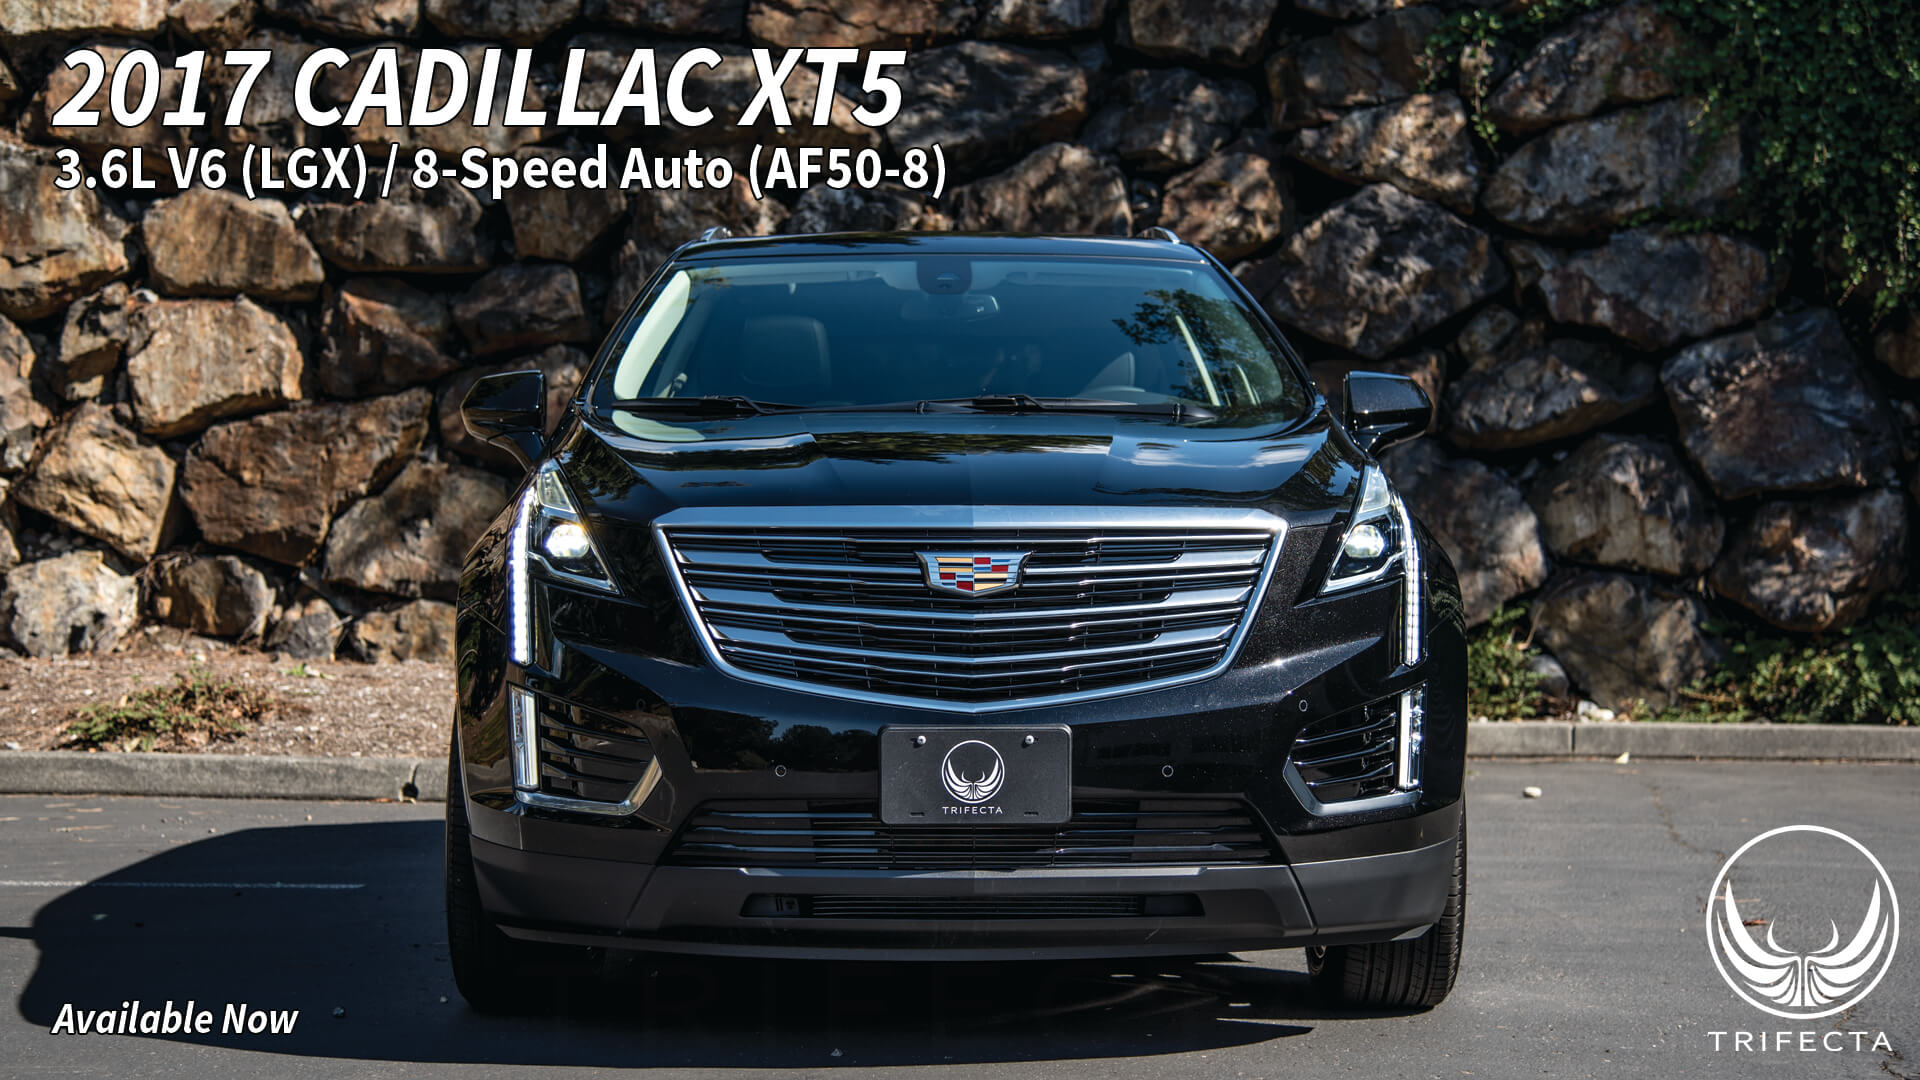 Trifecta for your cadillac xt5